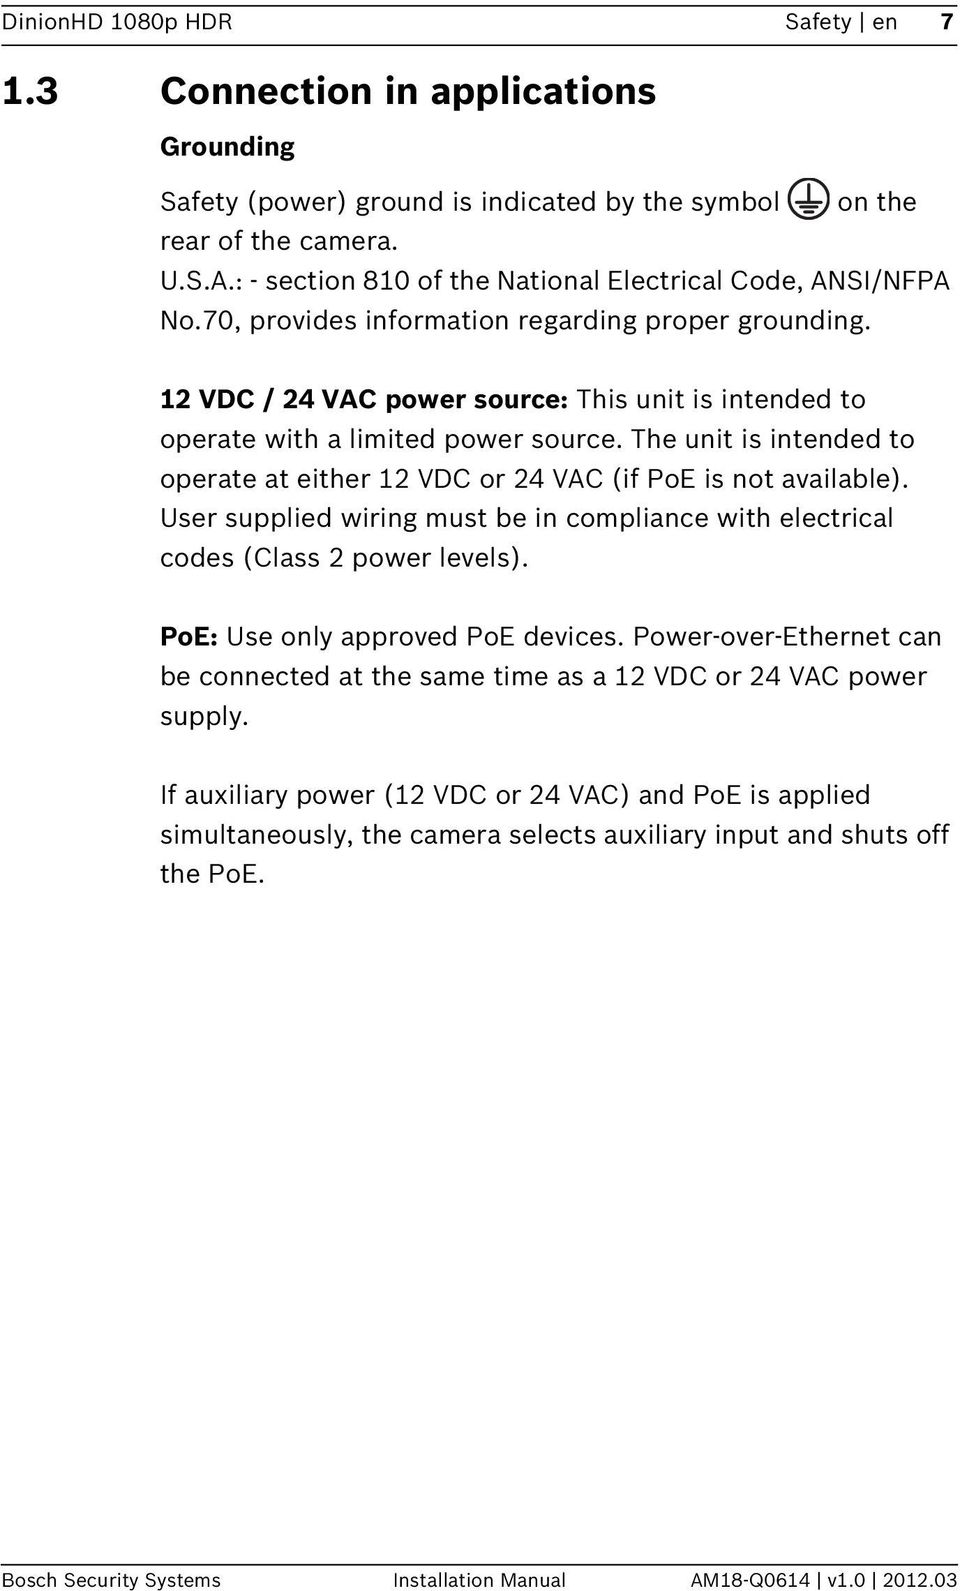 12 VDC / 24 VAC power source: This unit is intended to operate with a limited power source. The unit is intended to operate at either 12 VDC or 24 VAC (if PoE is not available).